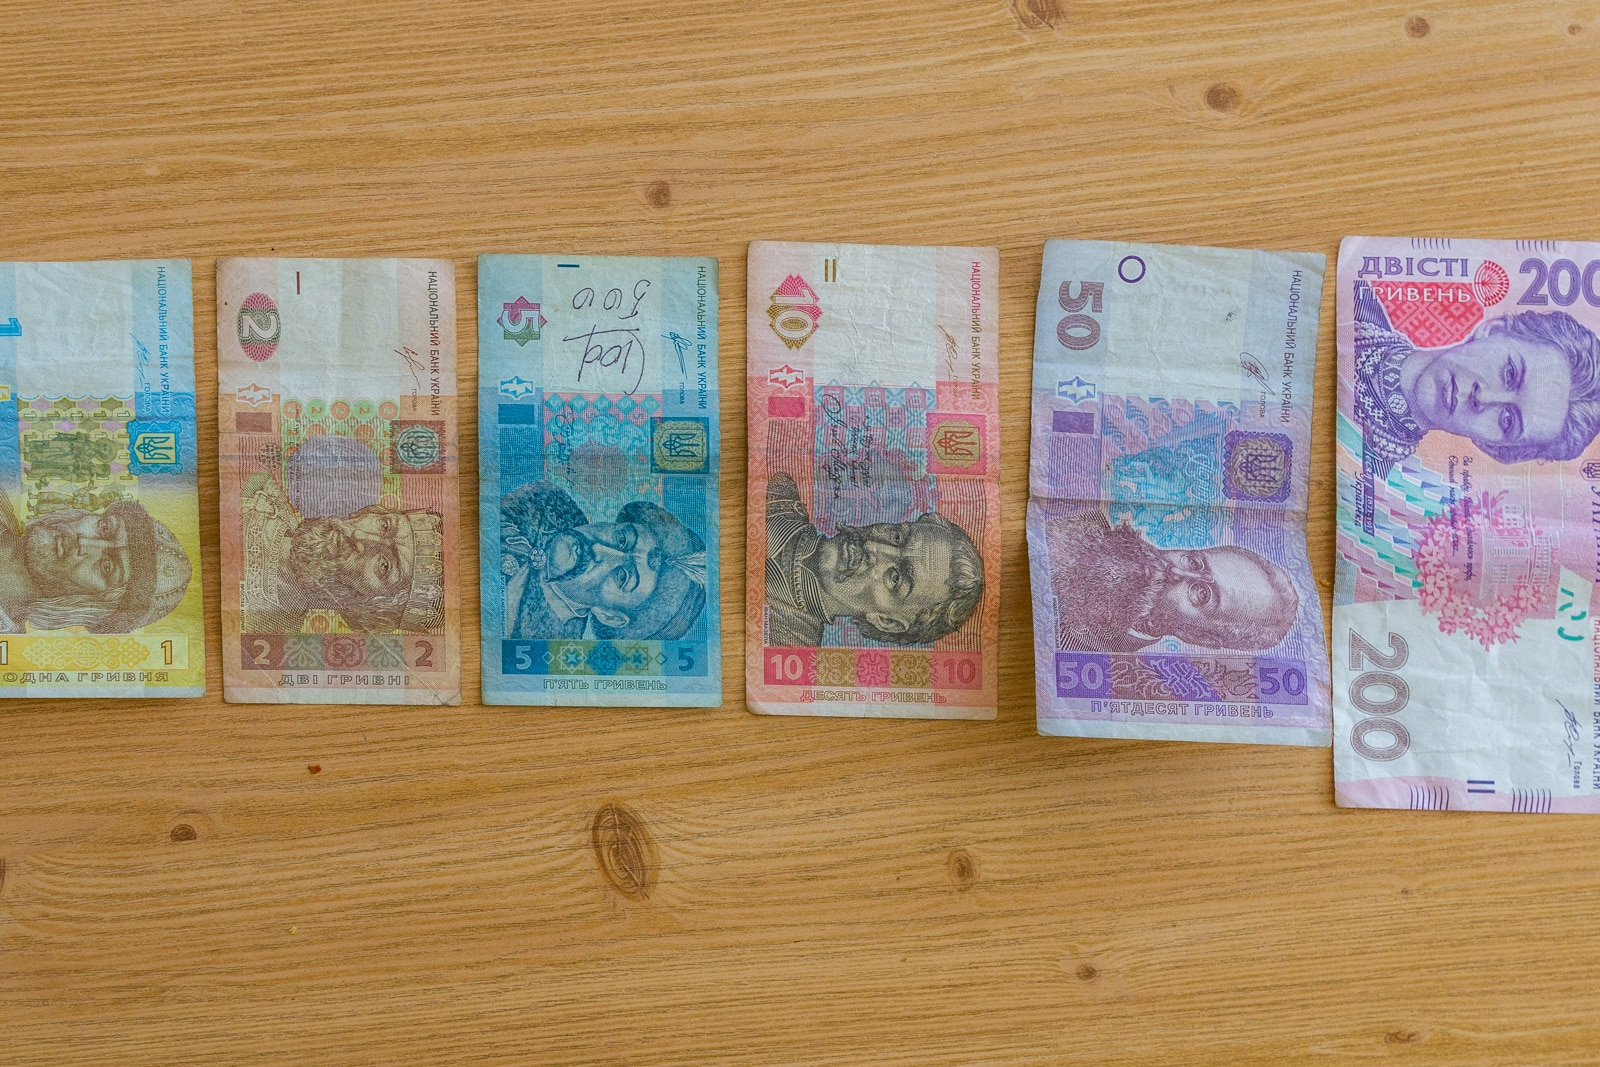 Ukrainian currency lined in a row